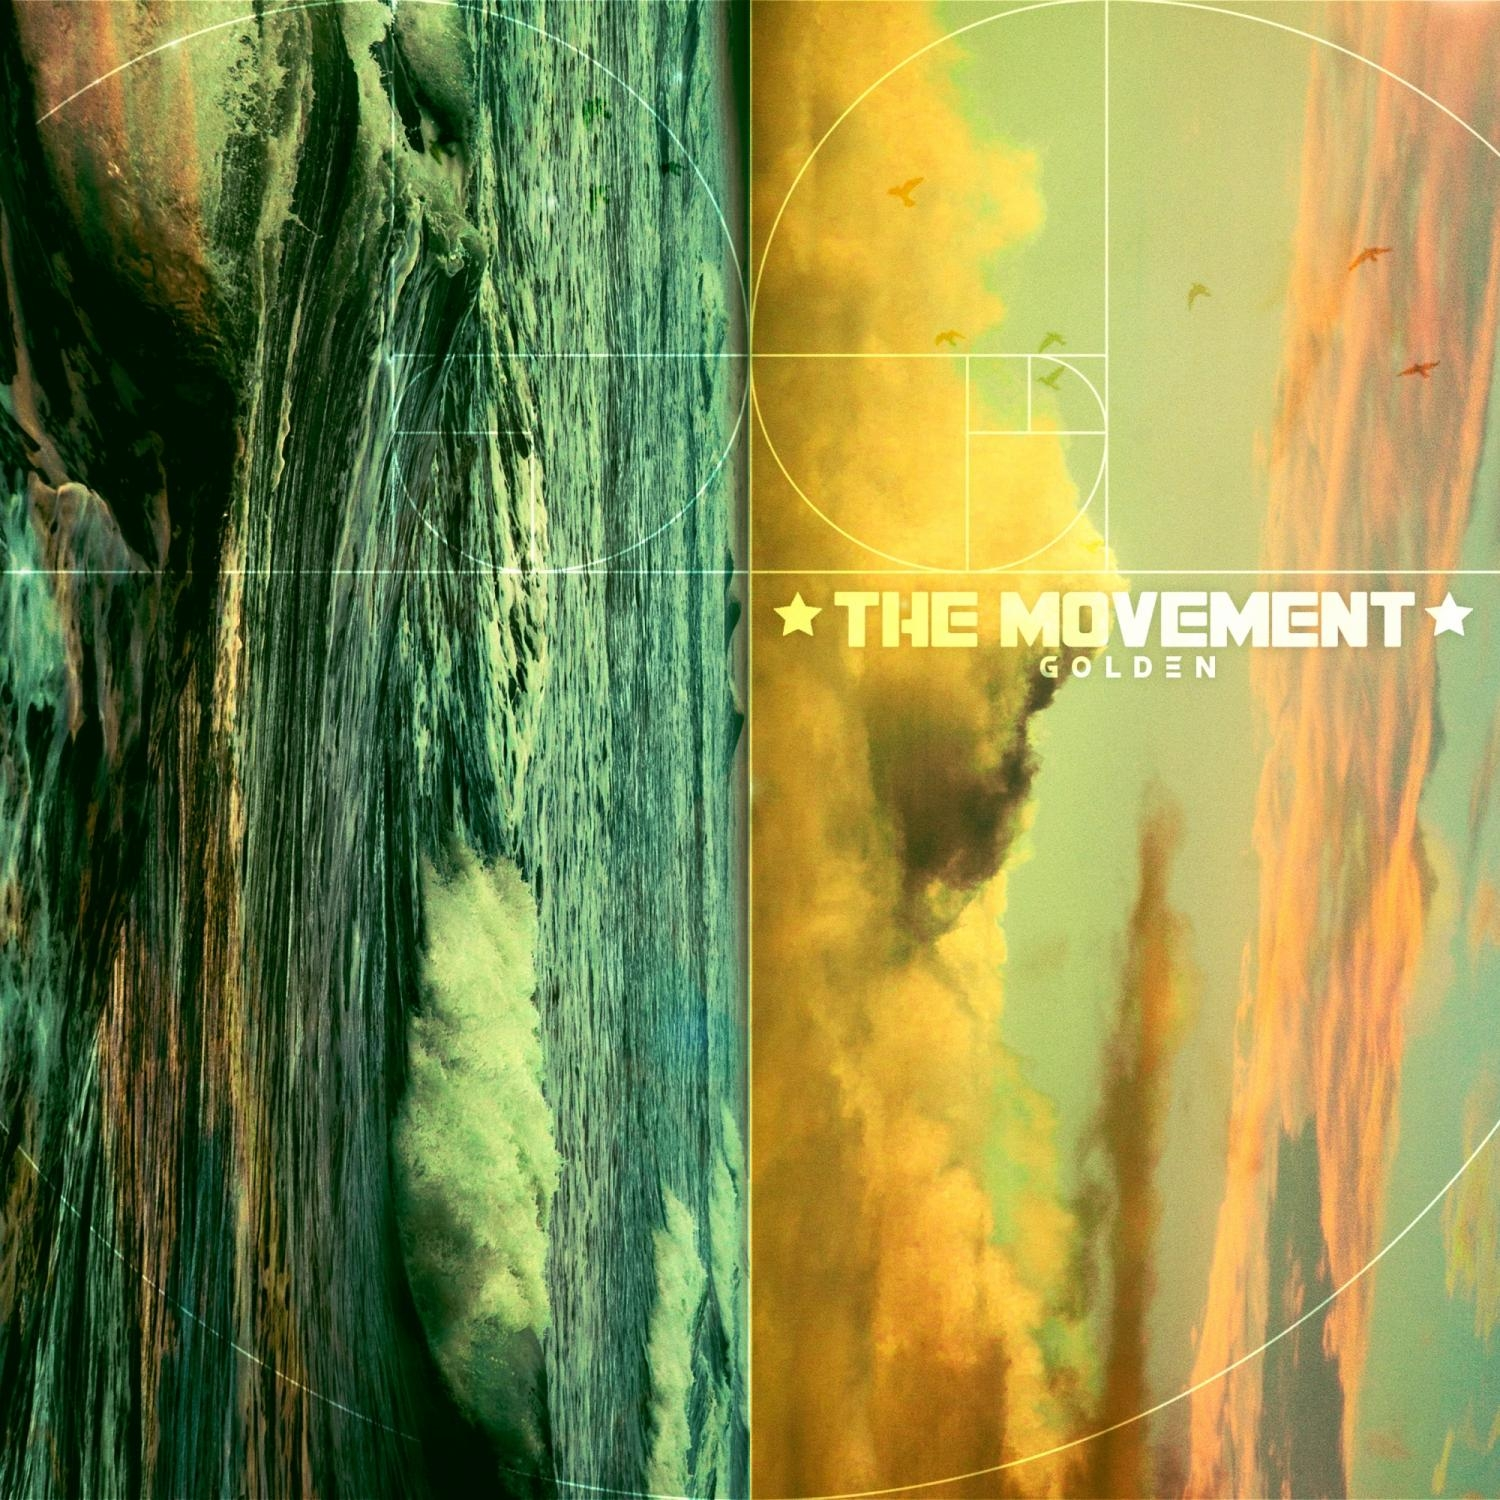 The Movement, Elliot Martin - Golden (feat. Elliot Martin)  (Original Mix)